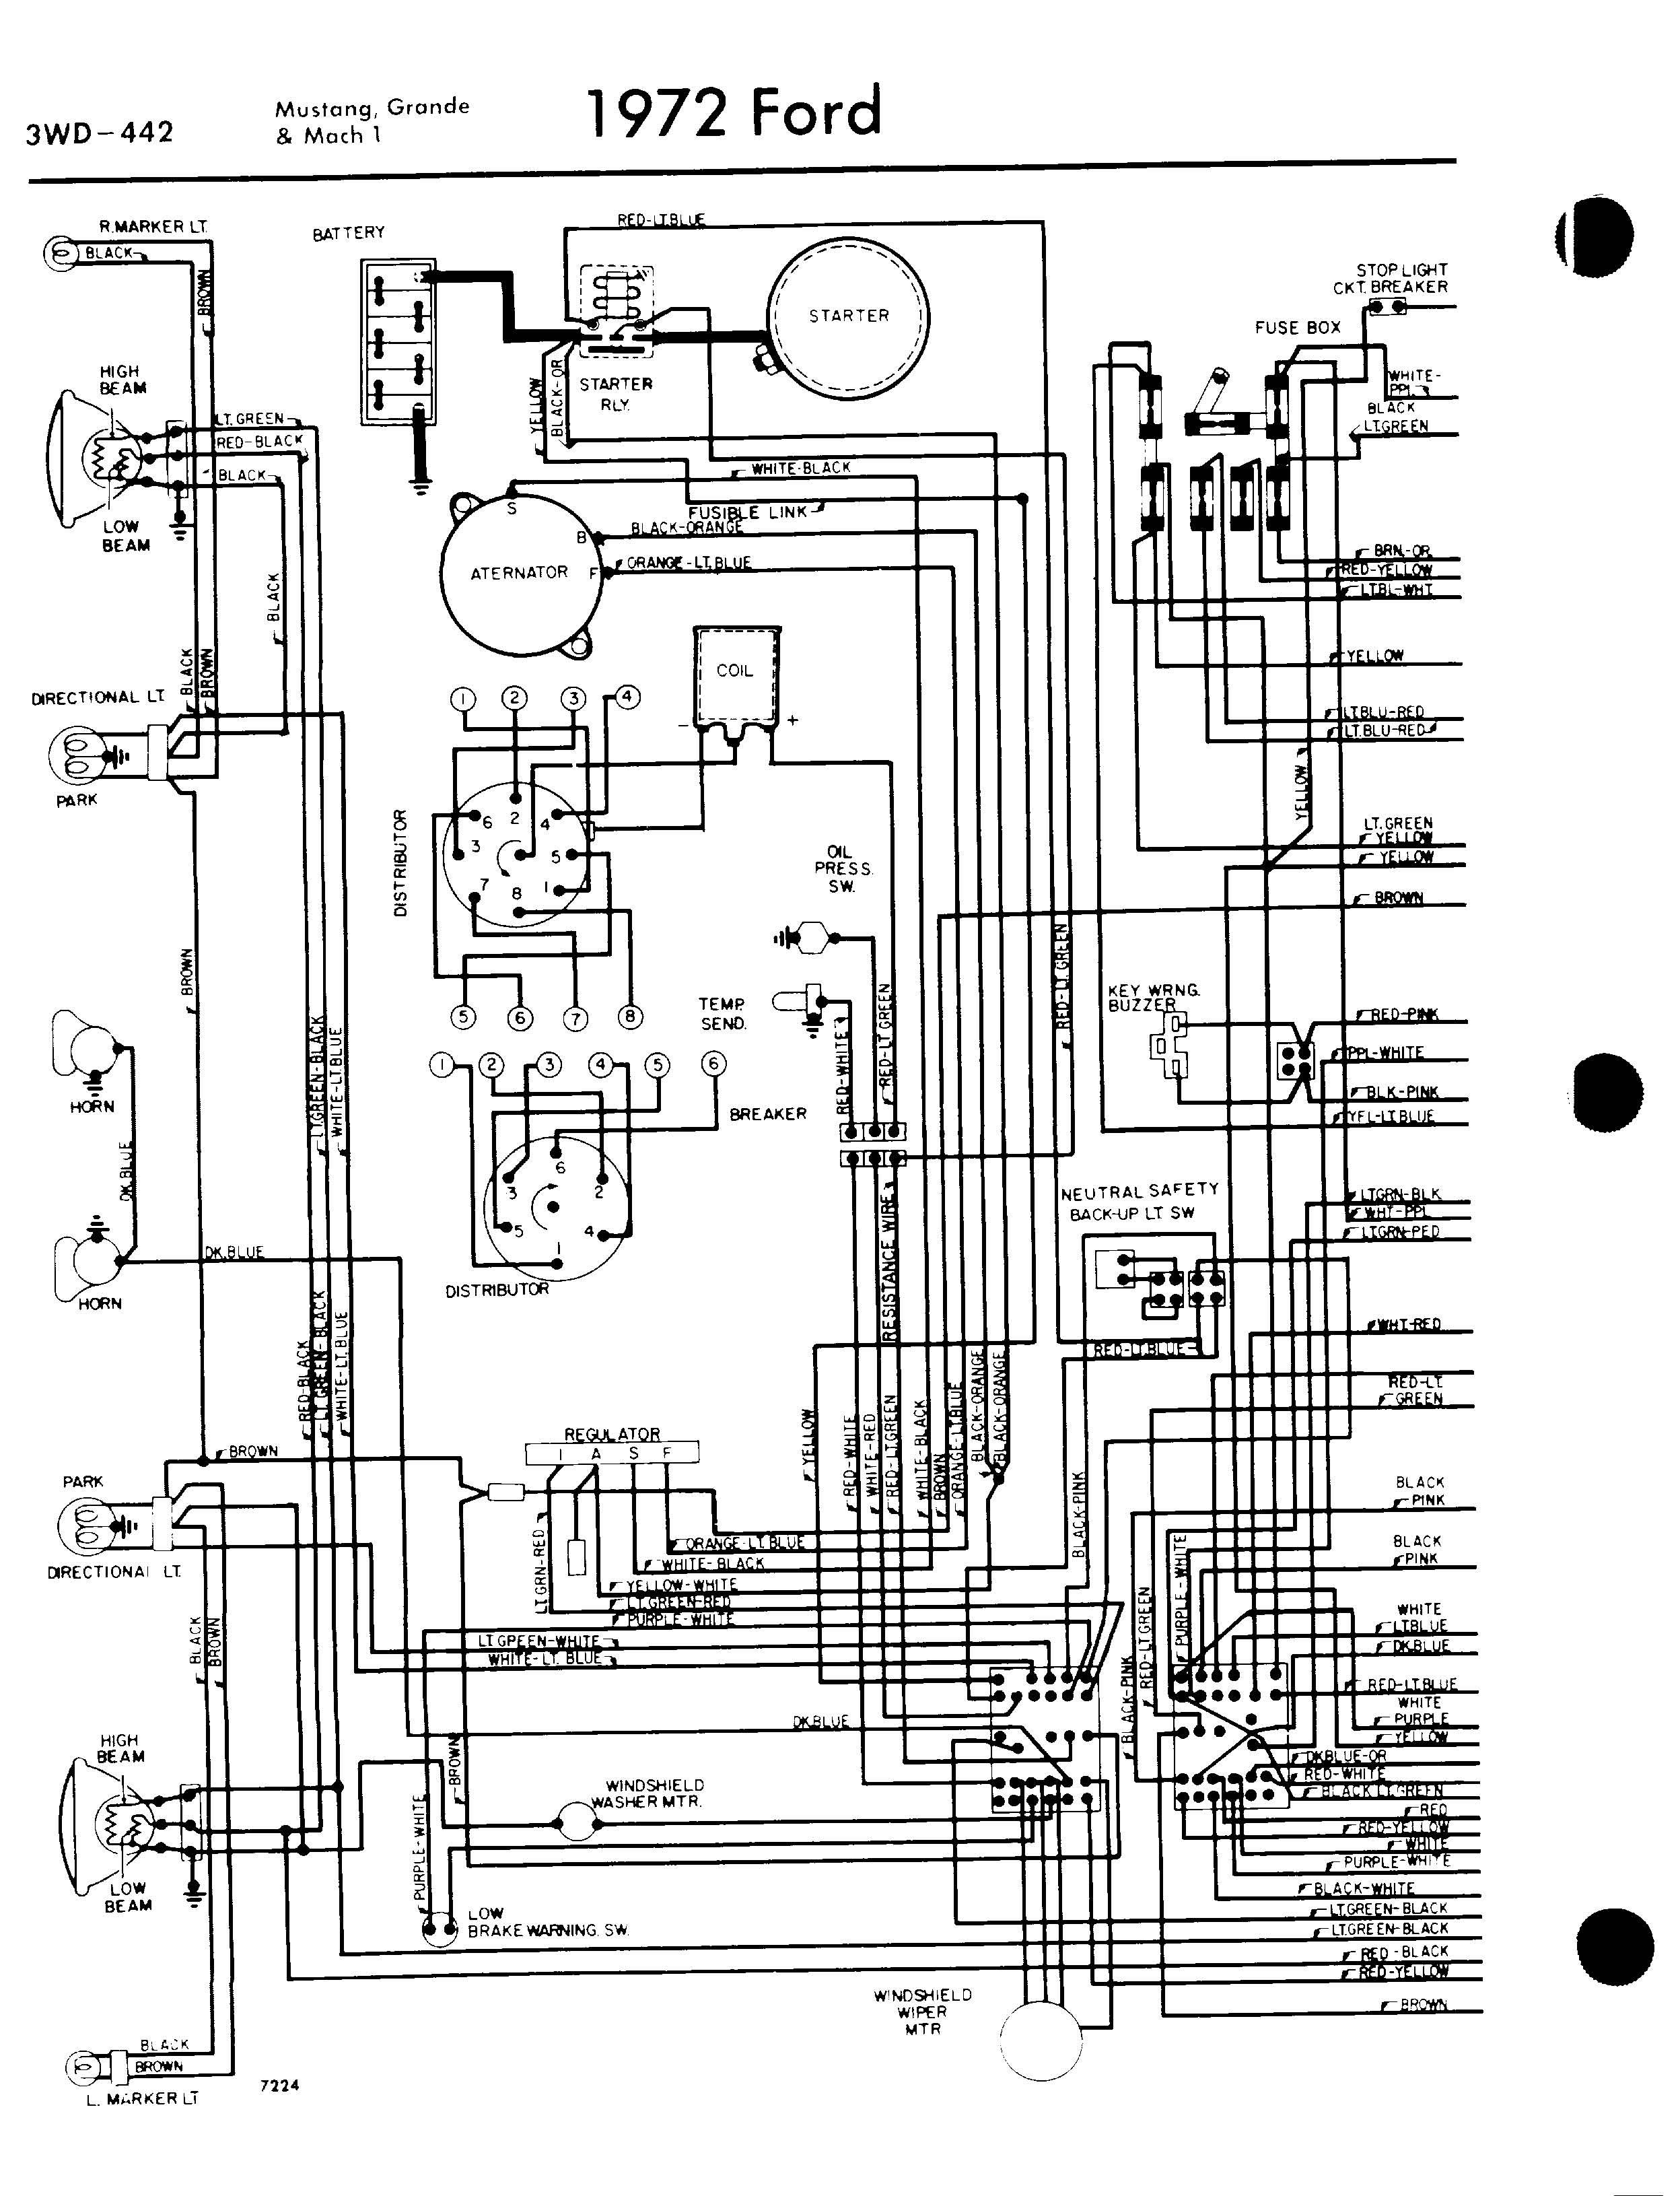 1969 Ford Mustang Wiring Diagrams | Wiring Schematic Diagram  Mustang Wiring Diagram on 1970 mustang dash lights, 1970 mustang parts, 1970 mustang oil filter, 1970 mustang mach 2, 1970 mustang colors, 1970 mustang rear window trim, 1970 mustang hatchback, 1970 mustang ignition switch, ford mustang vacuum diagram, 1970 mustang sportsroof, 1970 mustang fuel pump, 1970 mustang notchback, 1969 mustang ignition switch diagram, 66 mustang electrical diagram, 1970 mustang wire harness, 2003 mustang fuse diagram, 1970 mustang black, 1970 mustang drive shaft, 70 ford mustang electrical diagram, 1970 mustang ford,